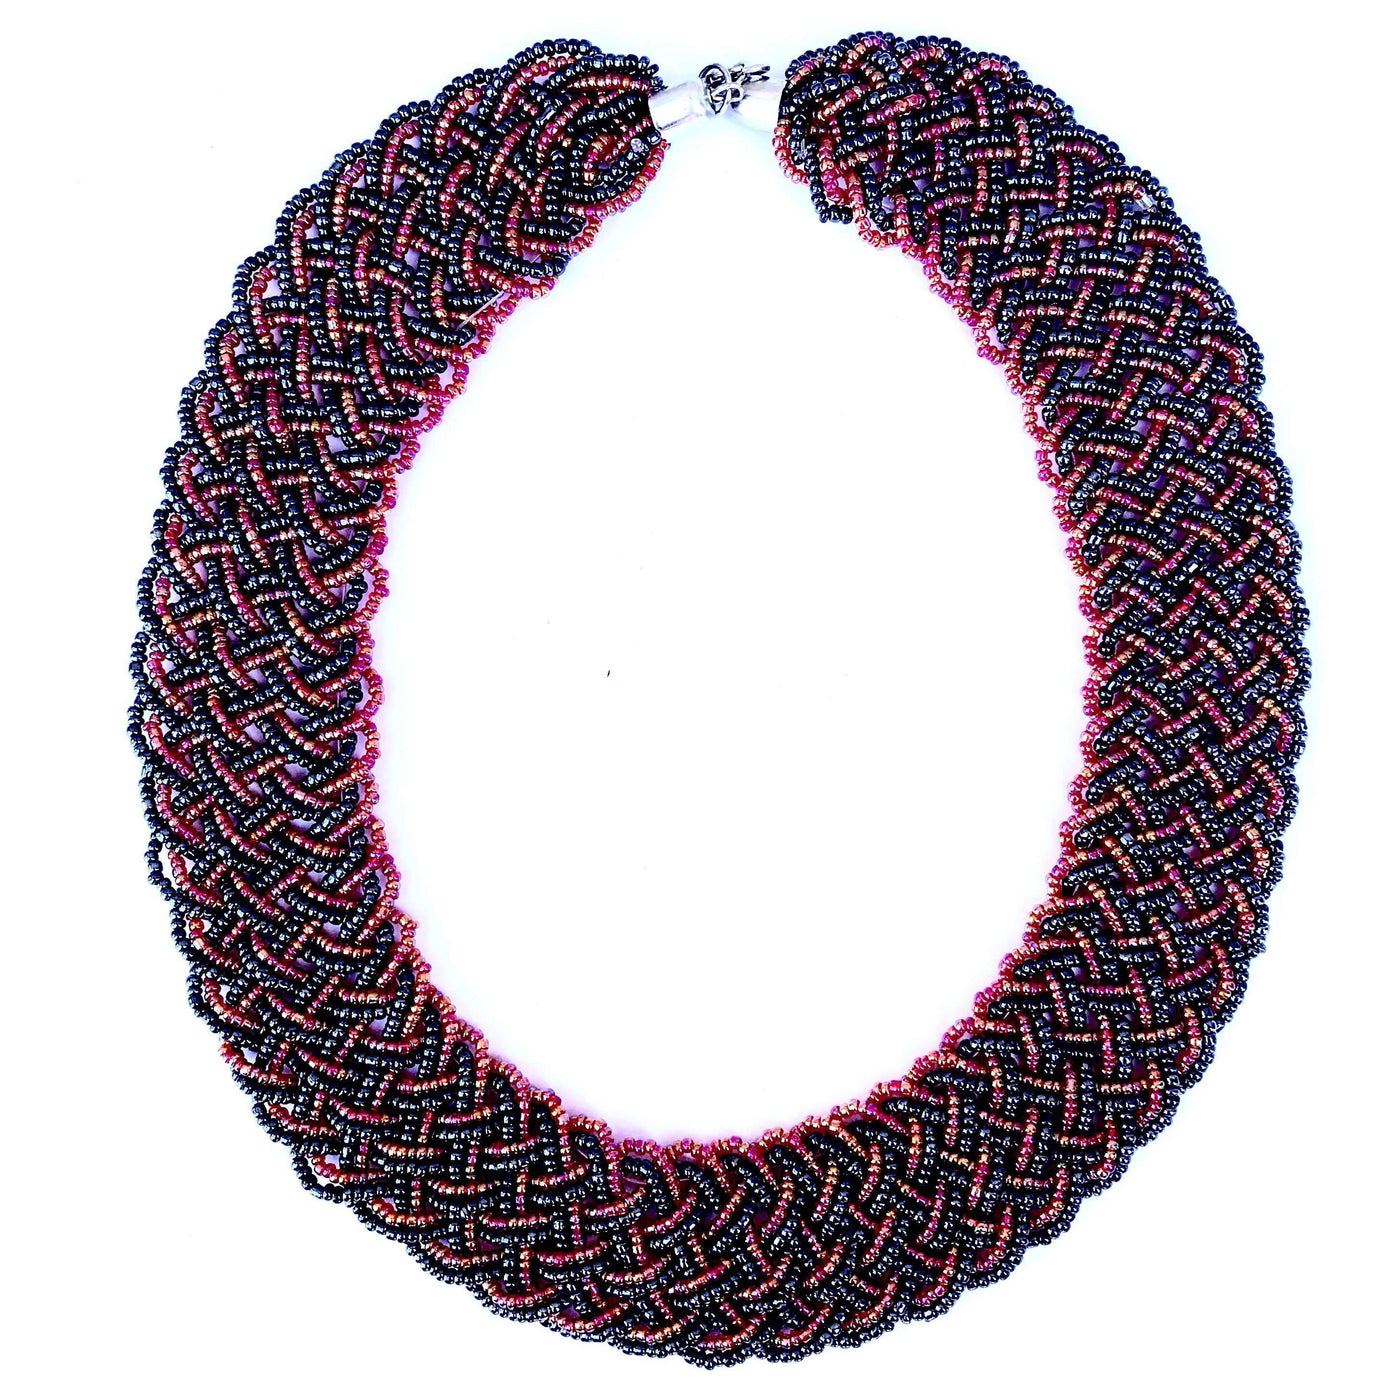 c5a9f0e6a69d2a ... Msichana:Bead collar necklace,Irridiscent ...